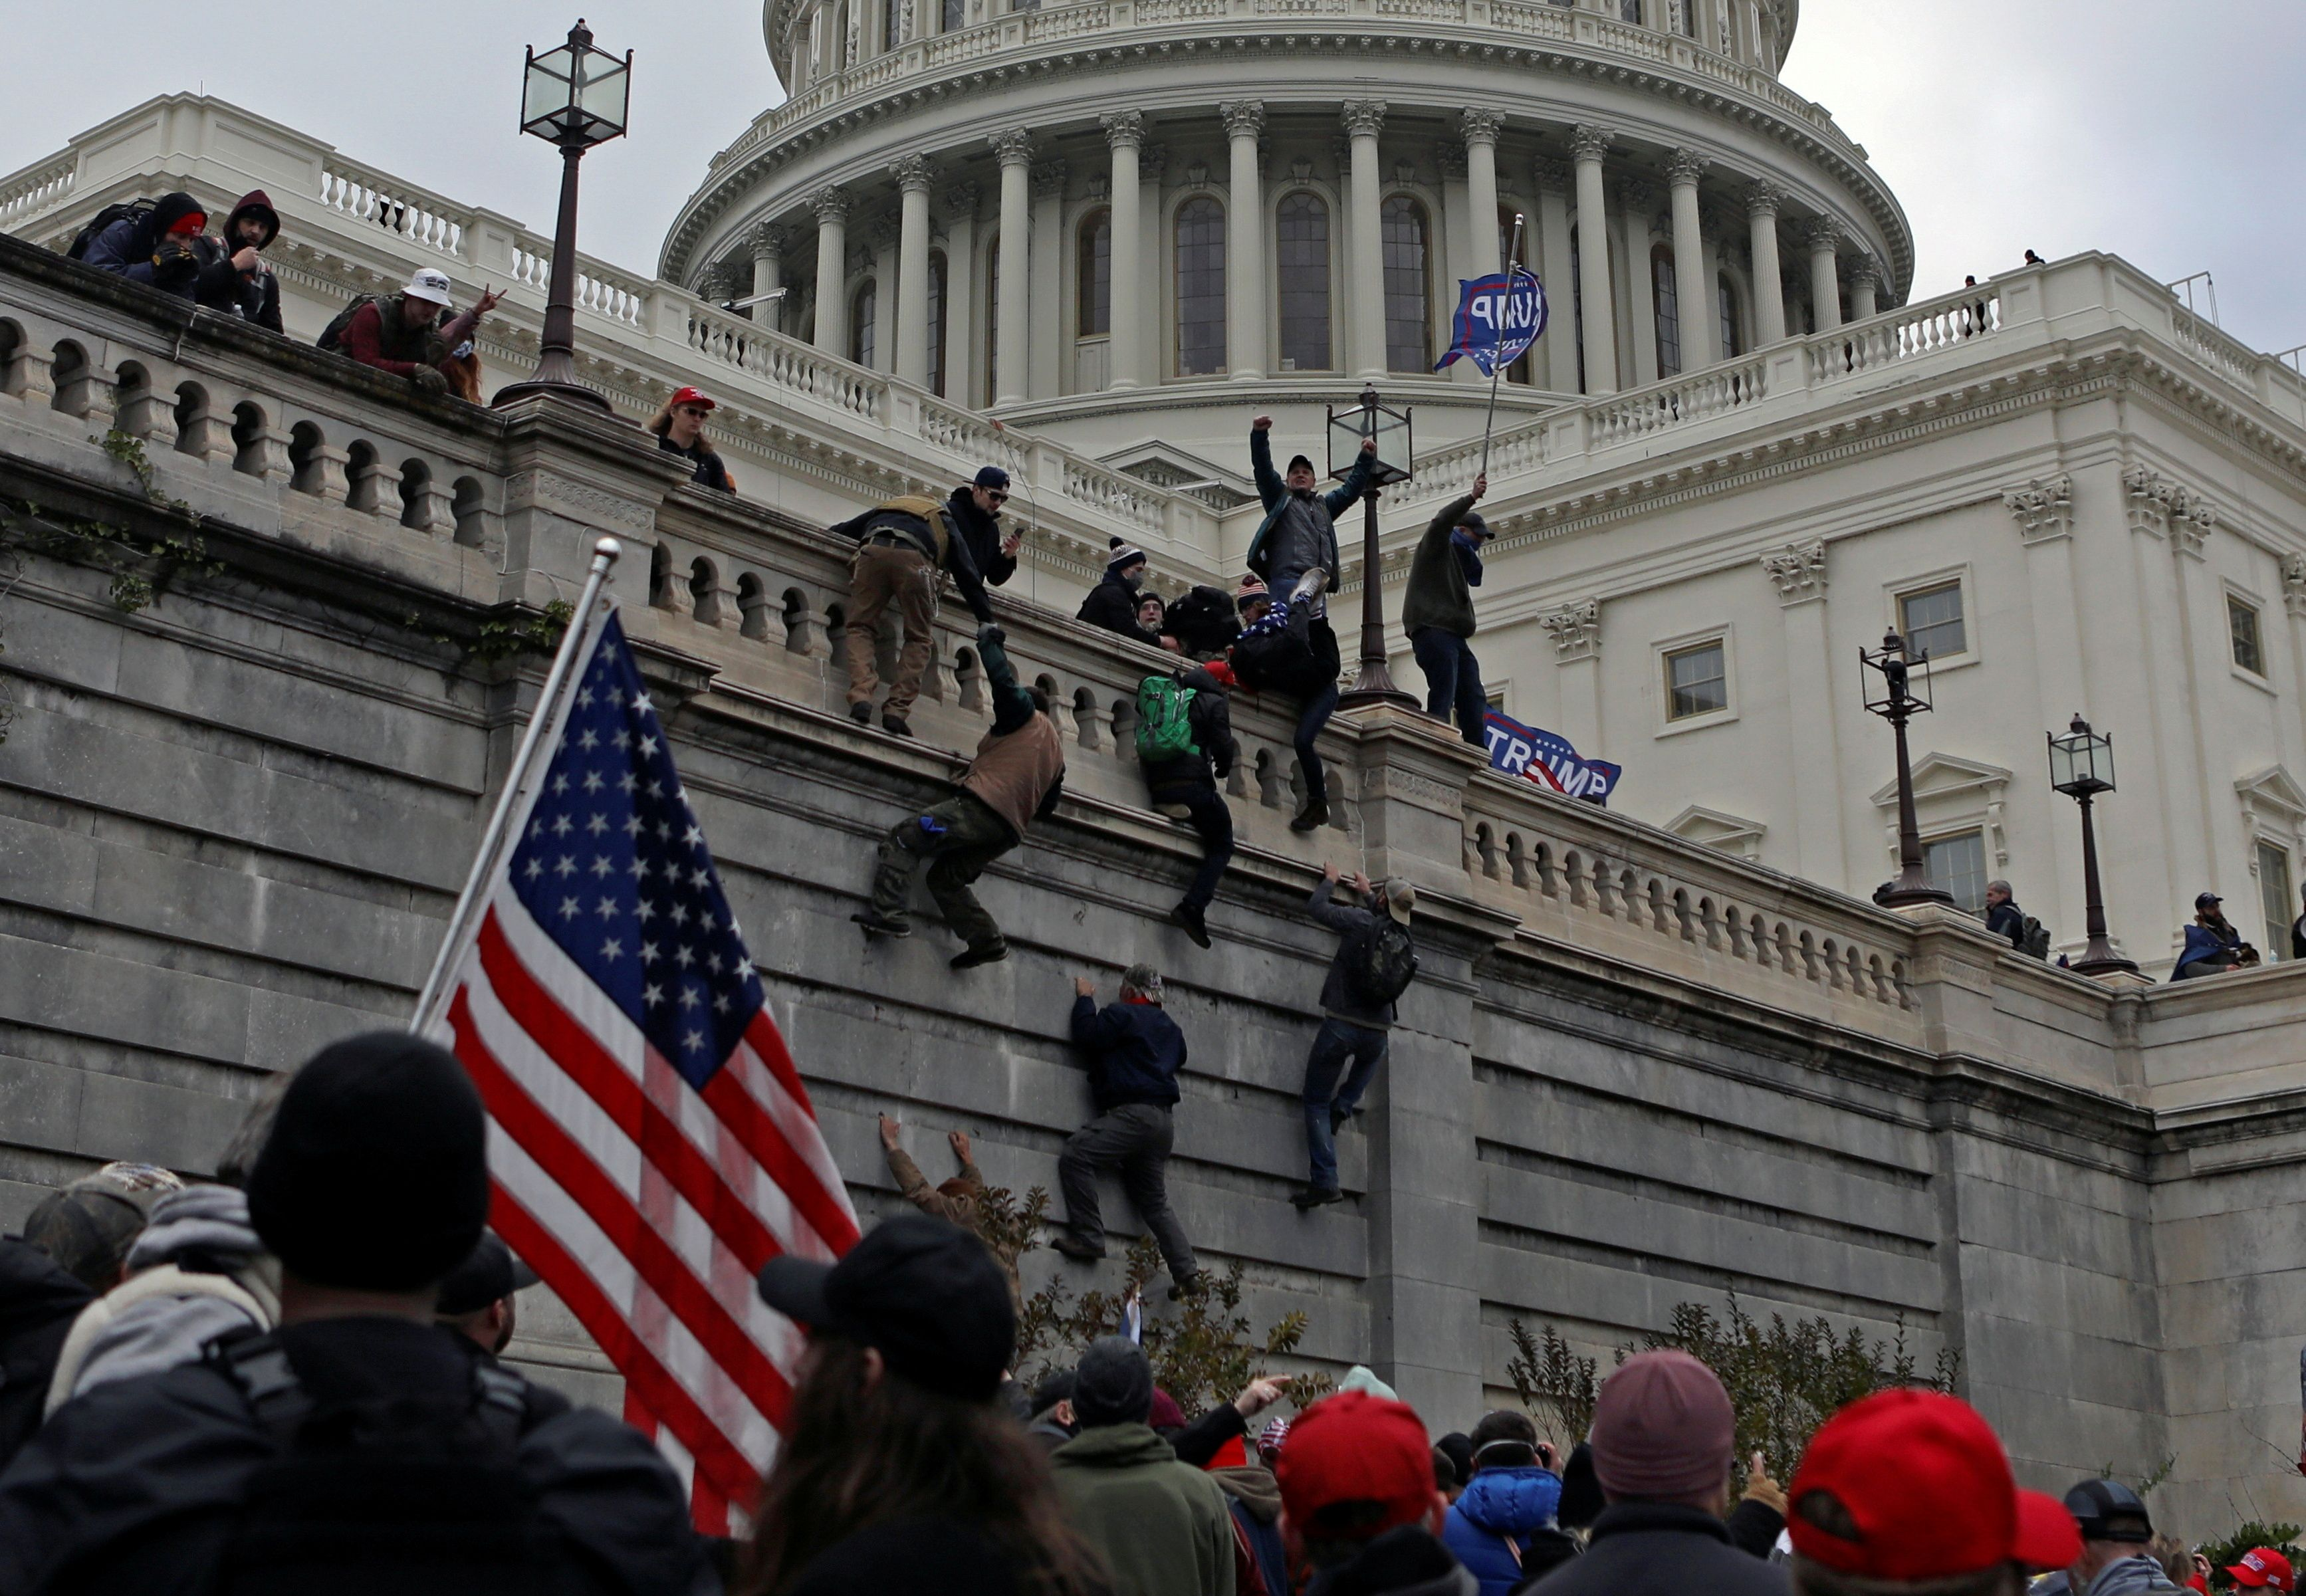 Supporters of U.S. President Donald Trump climb a wall during a protest against the certification of the 2020 presidential election results by the Congress, at the Capitol in Washington, U.S., January 6, 2021. Picture taken January 6, 2021. REUTERS/Jim Urquhart/File Photo